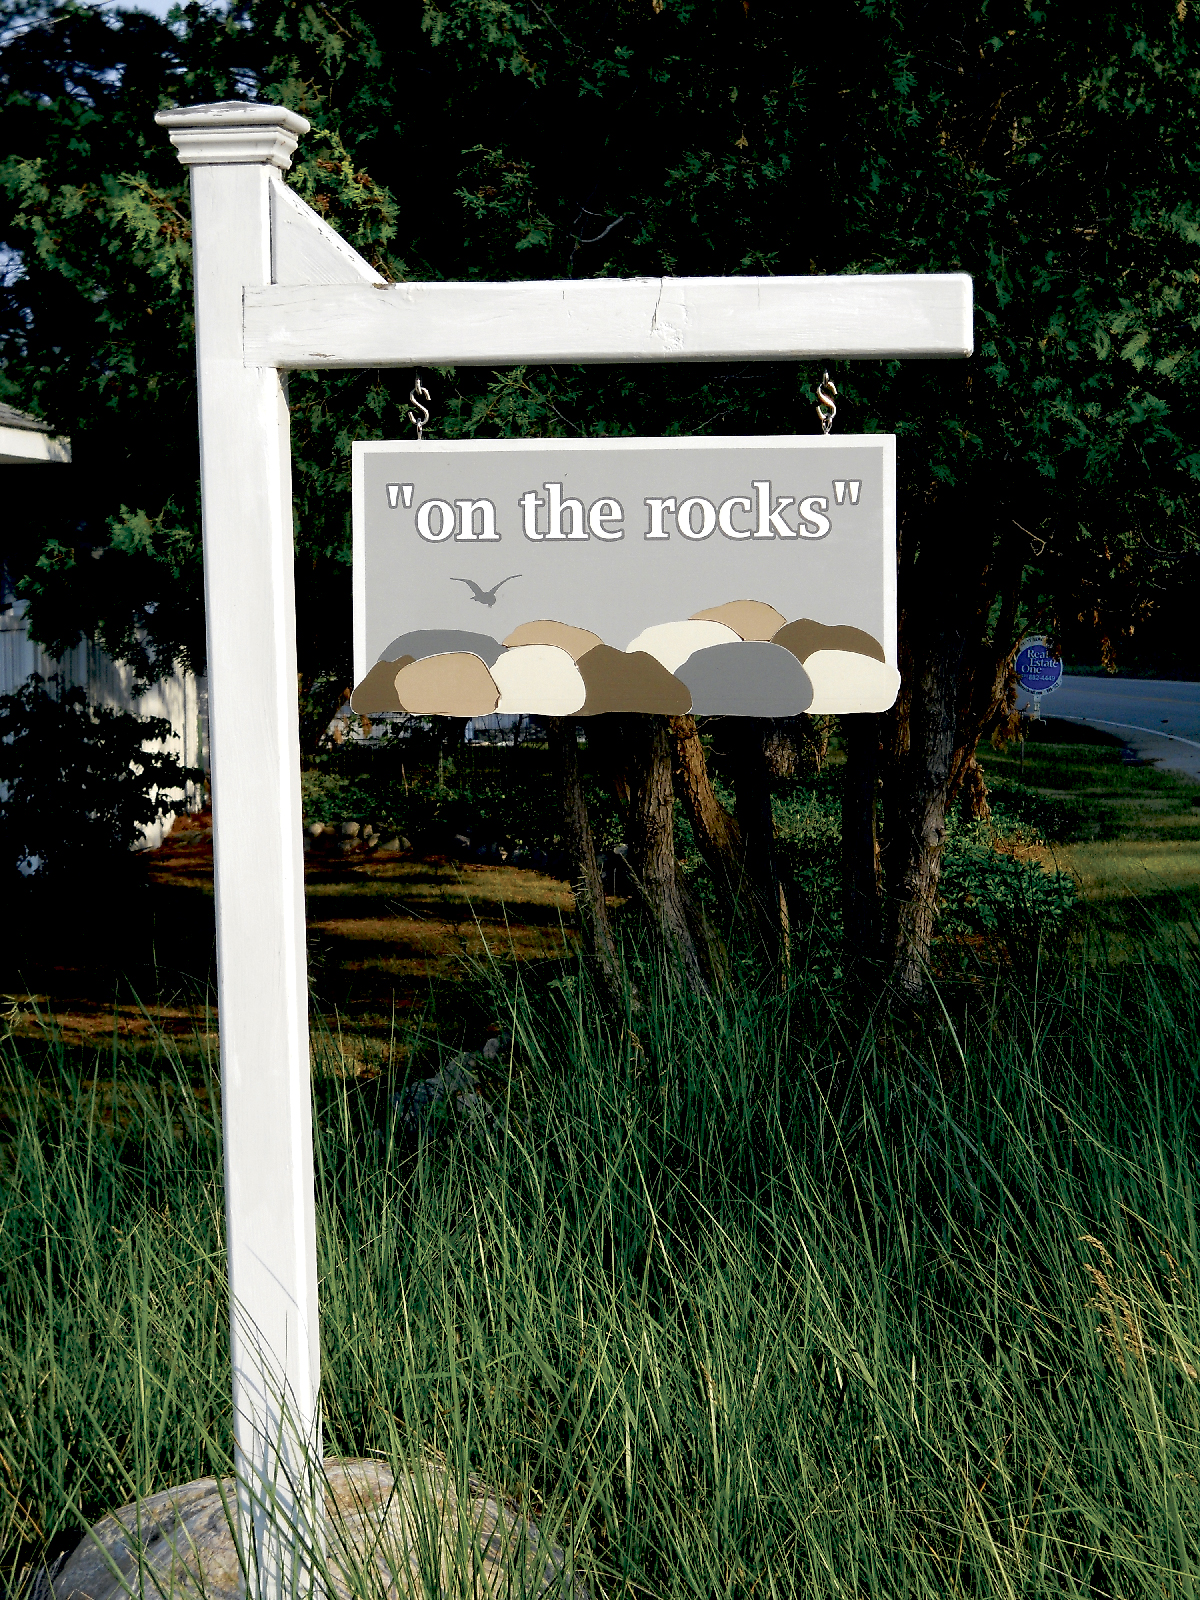 A sampling of signs for cottages. Photos courtesy of